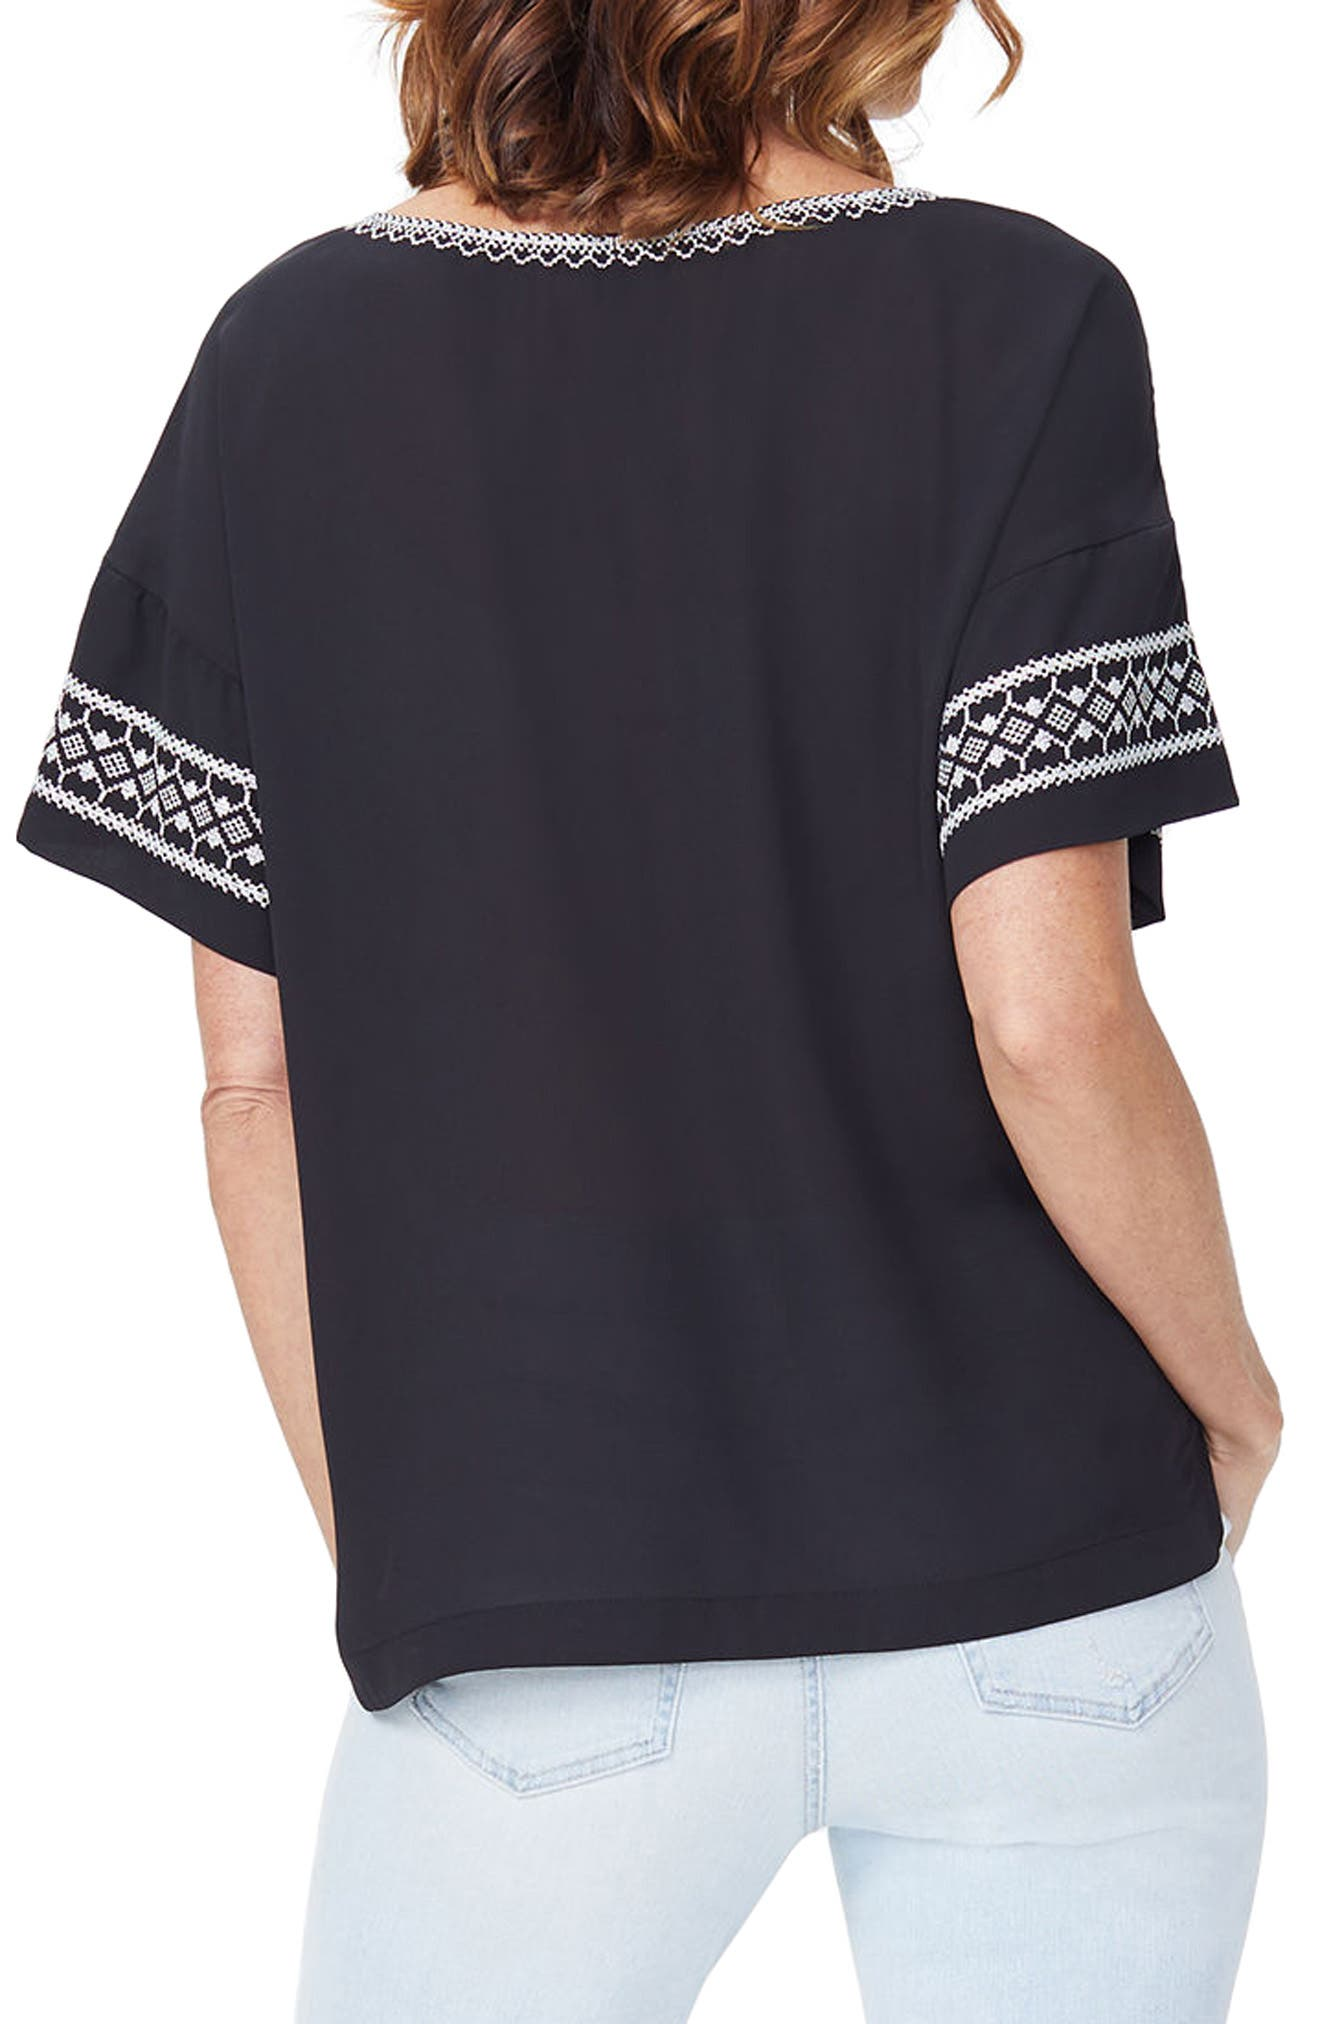 Embroidered Tee,                             Alternate thumbnail 2, color,                             Black